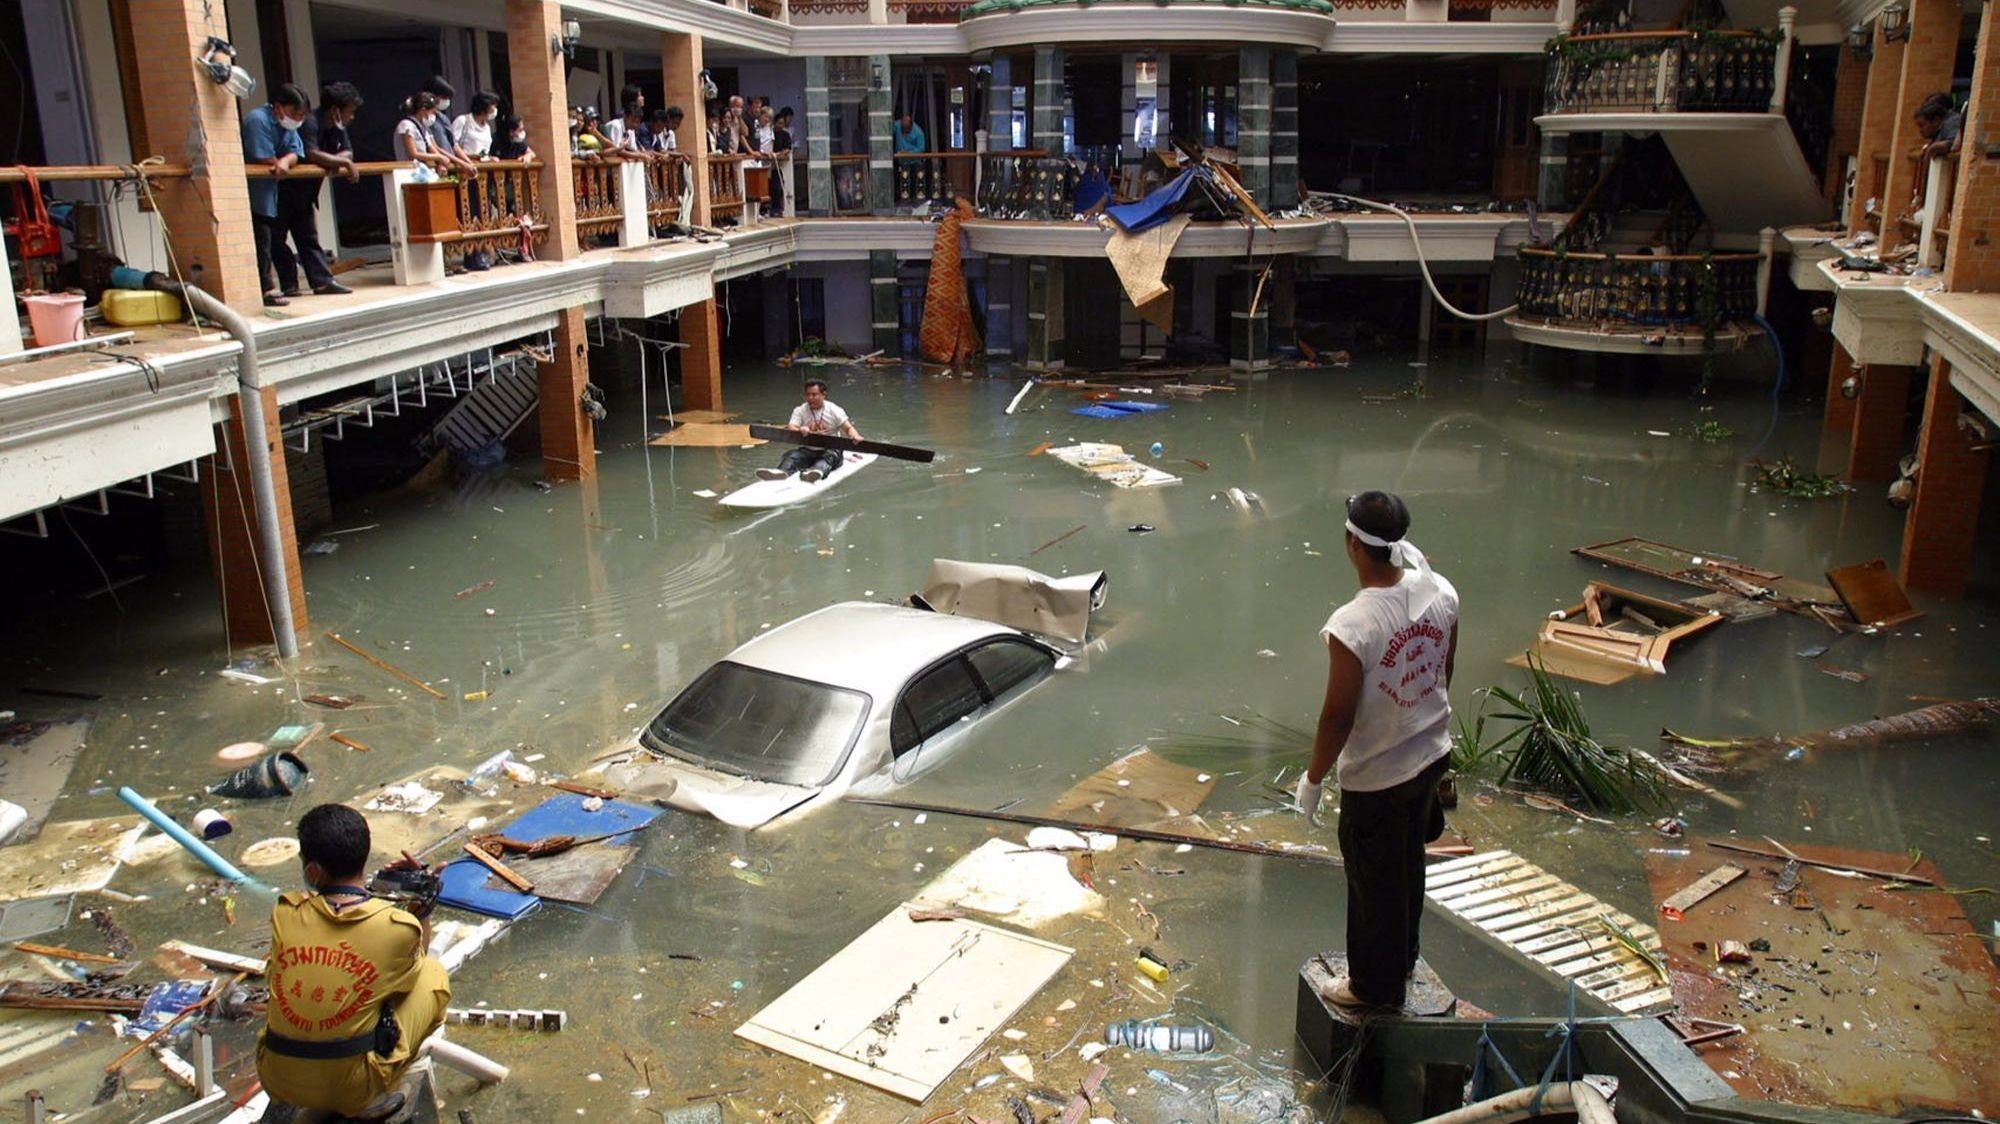 Rescue and cleanup crews survey a flooded lobby at a hotel on Phuket Island in 2004 after massive tsunami waves smashed coastlines.